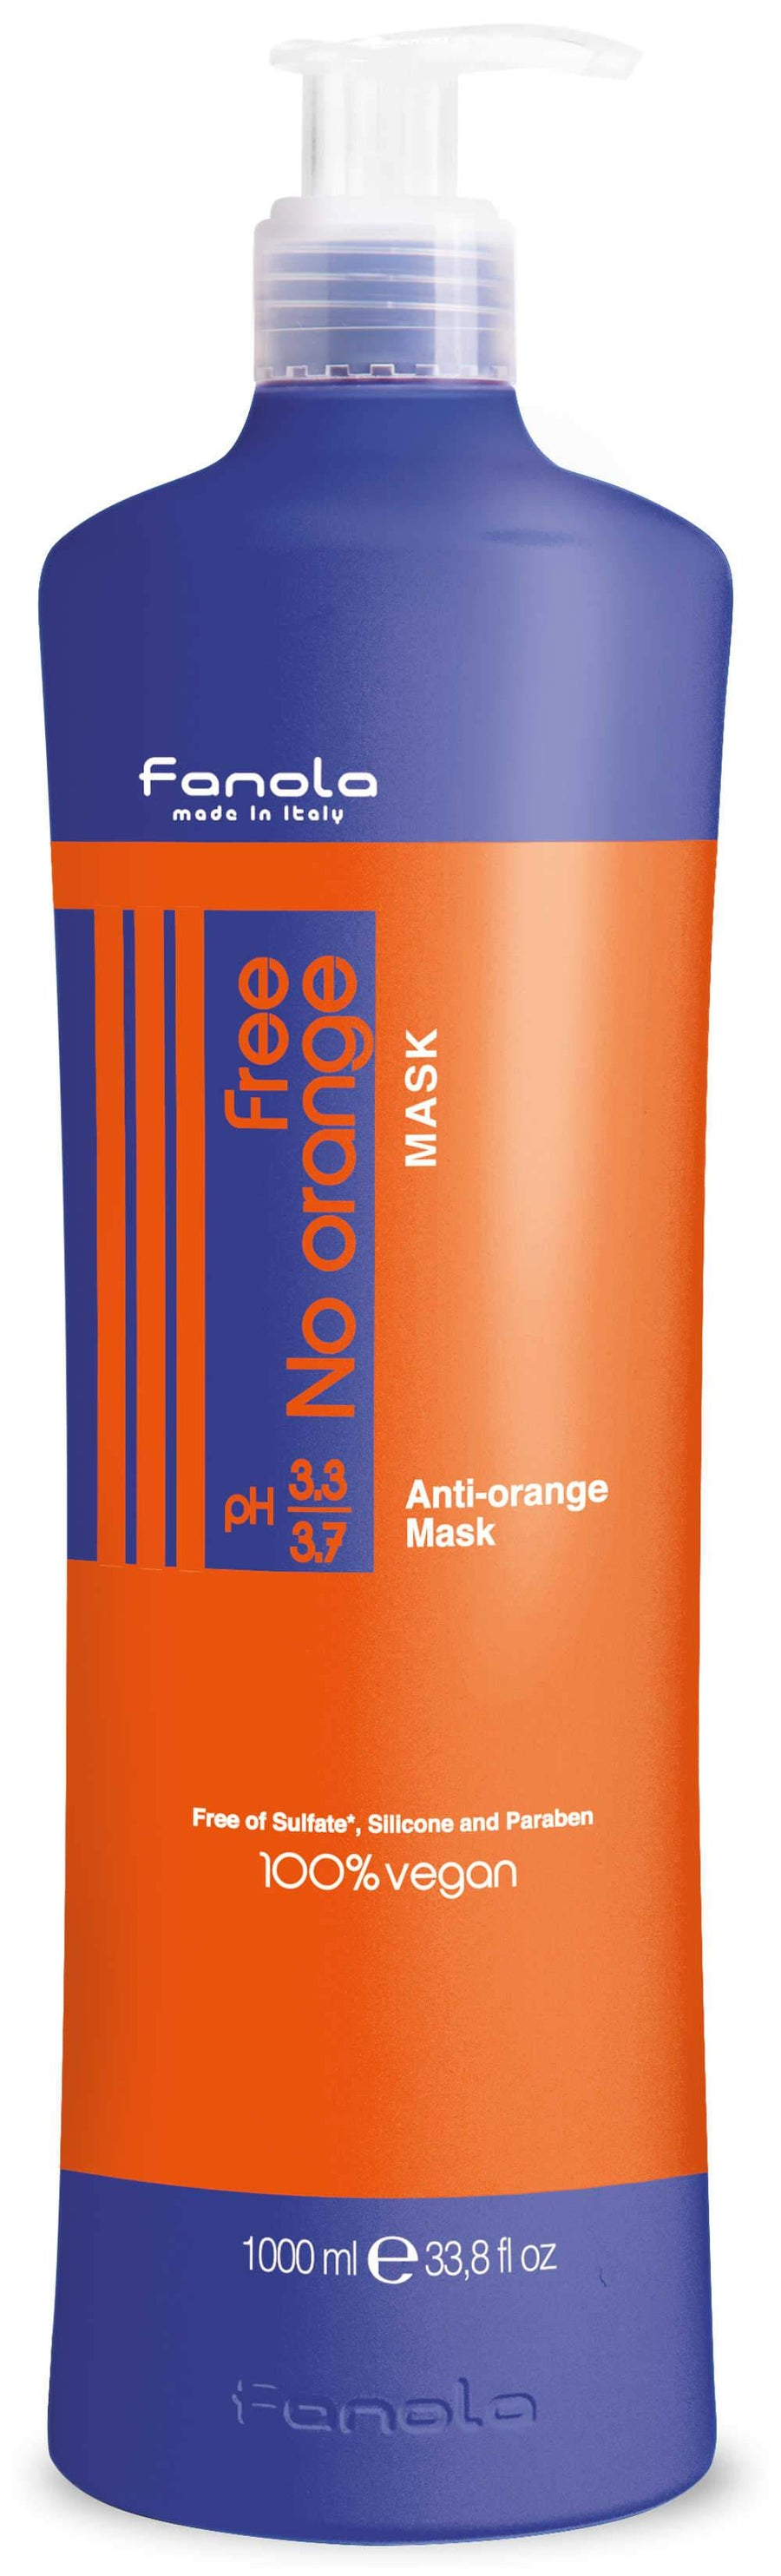 Fanola Free No Orange Vegan Shampoo or Mask Hair Shampoos Fanola Mask, 1000 ML